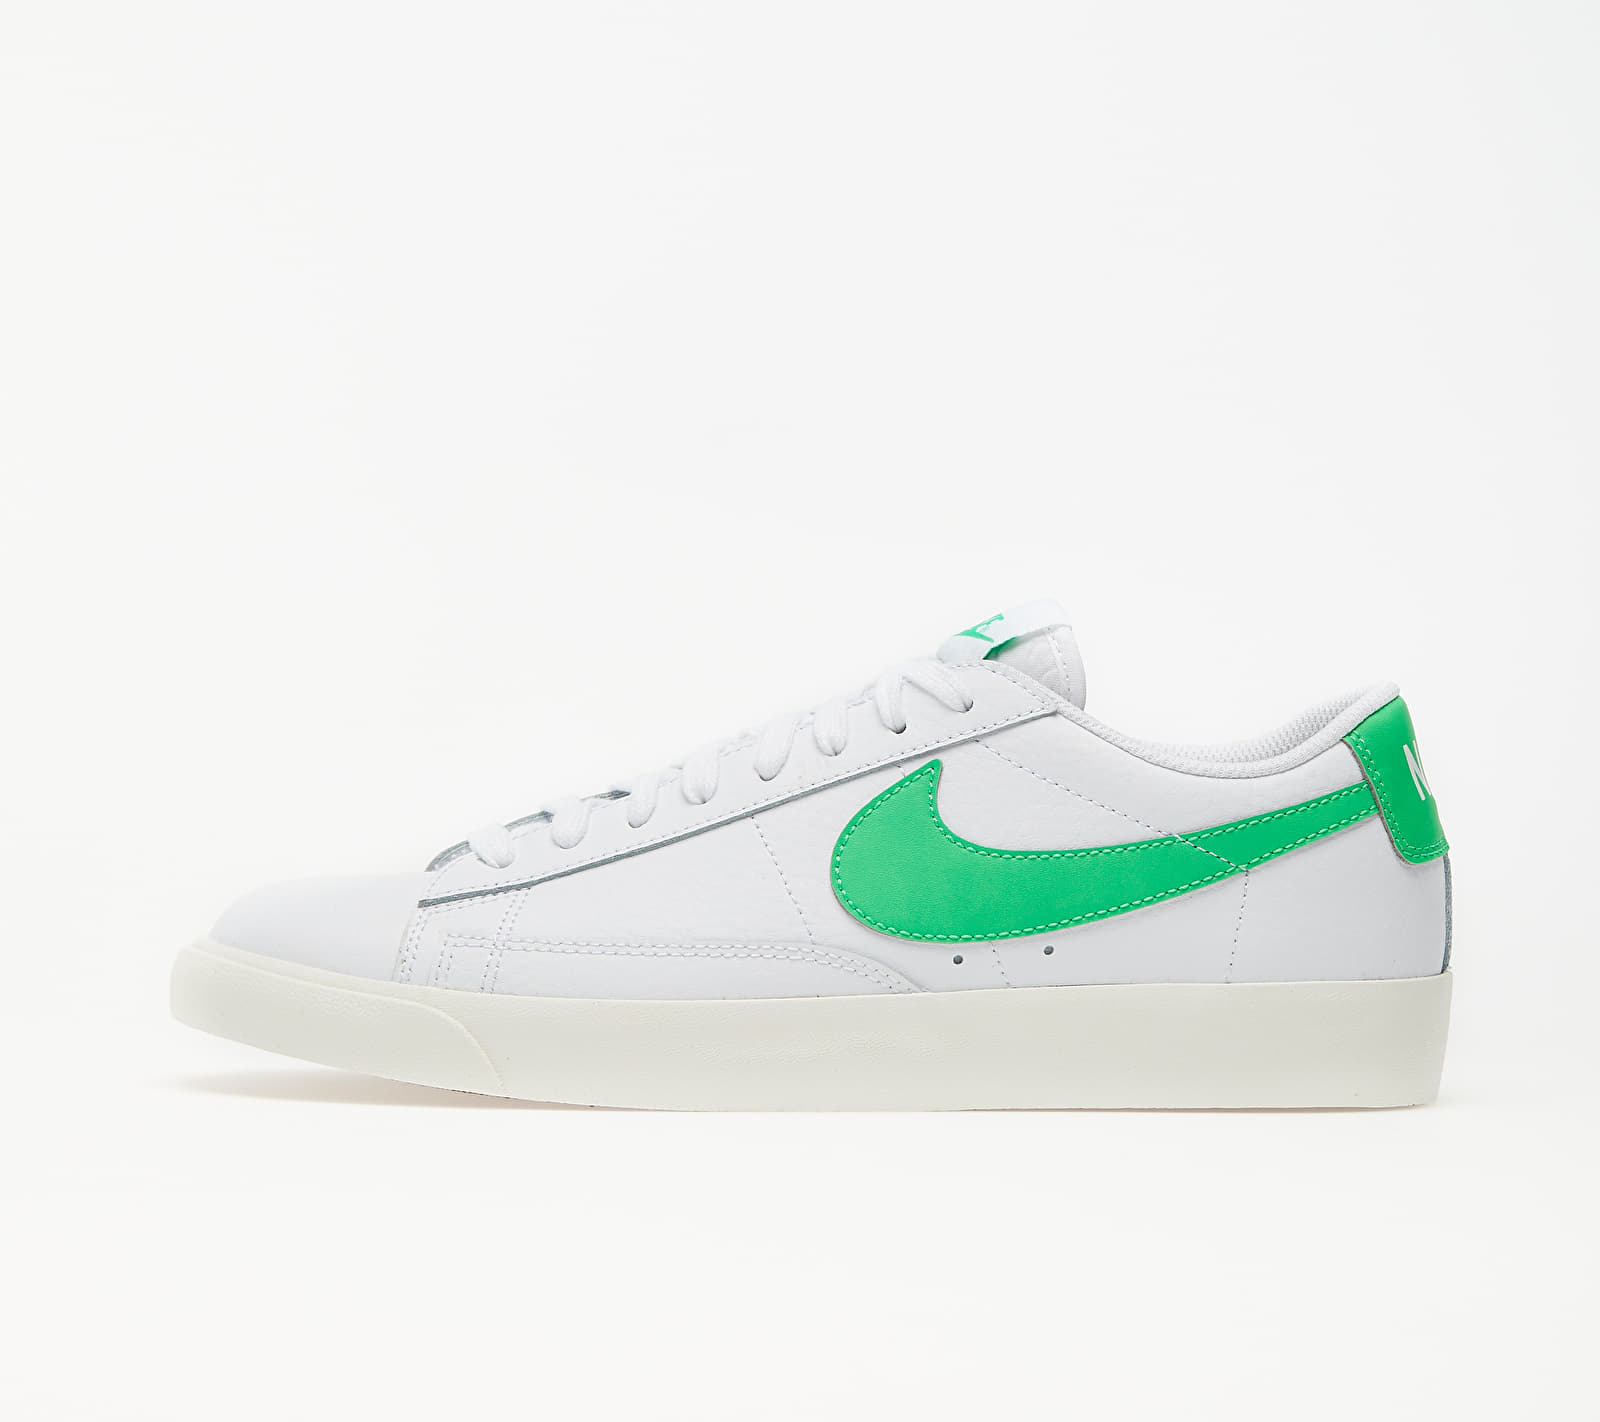 Nike Blazer Low Leather White/ Green Spark-Sail EUR 45.5